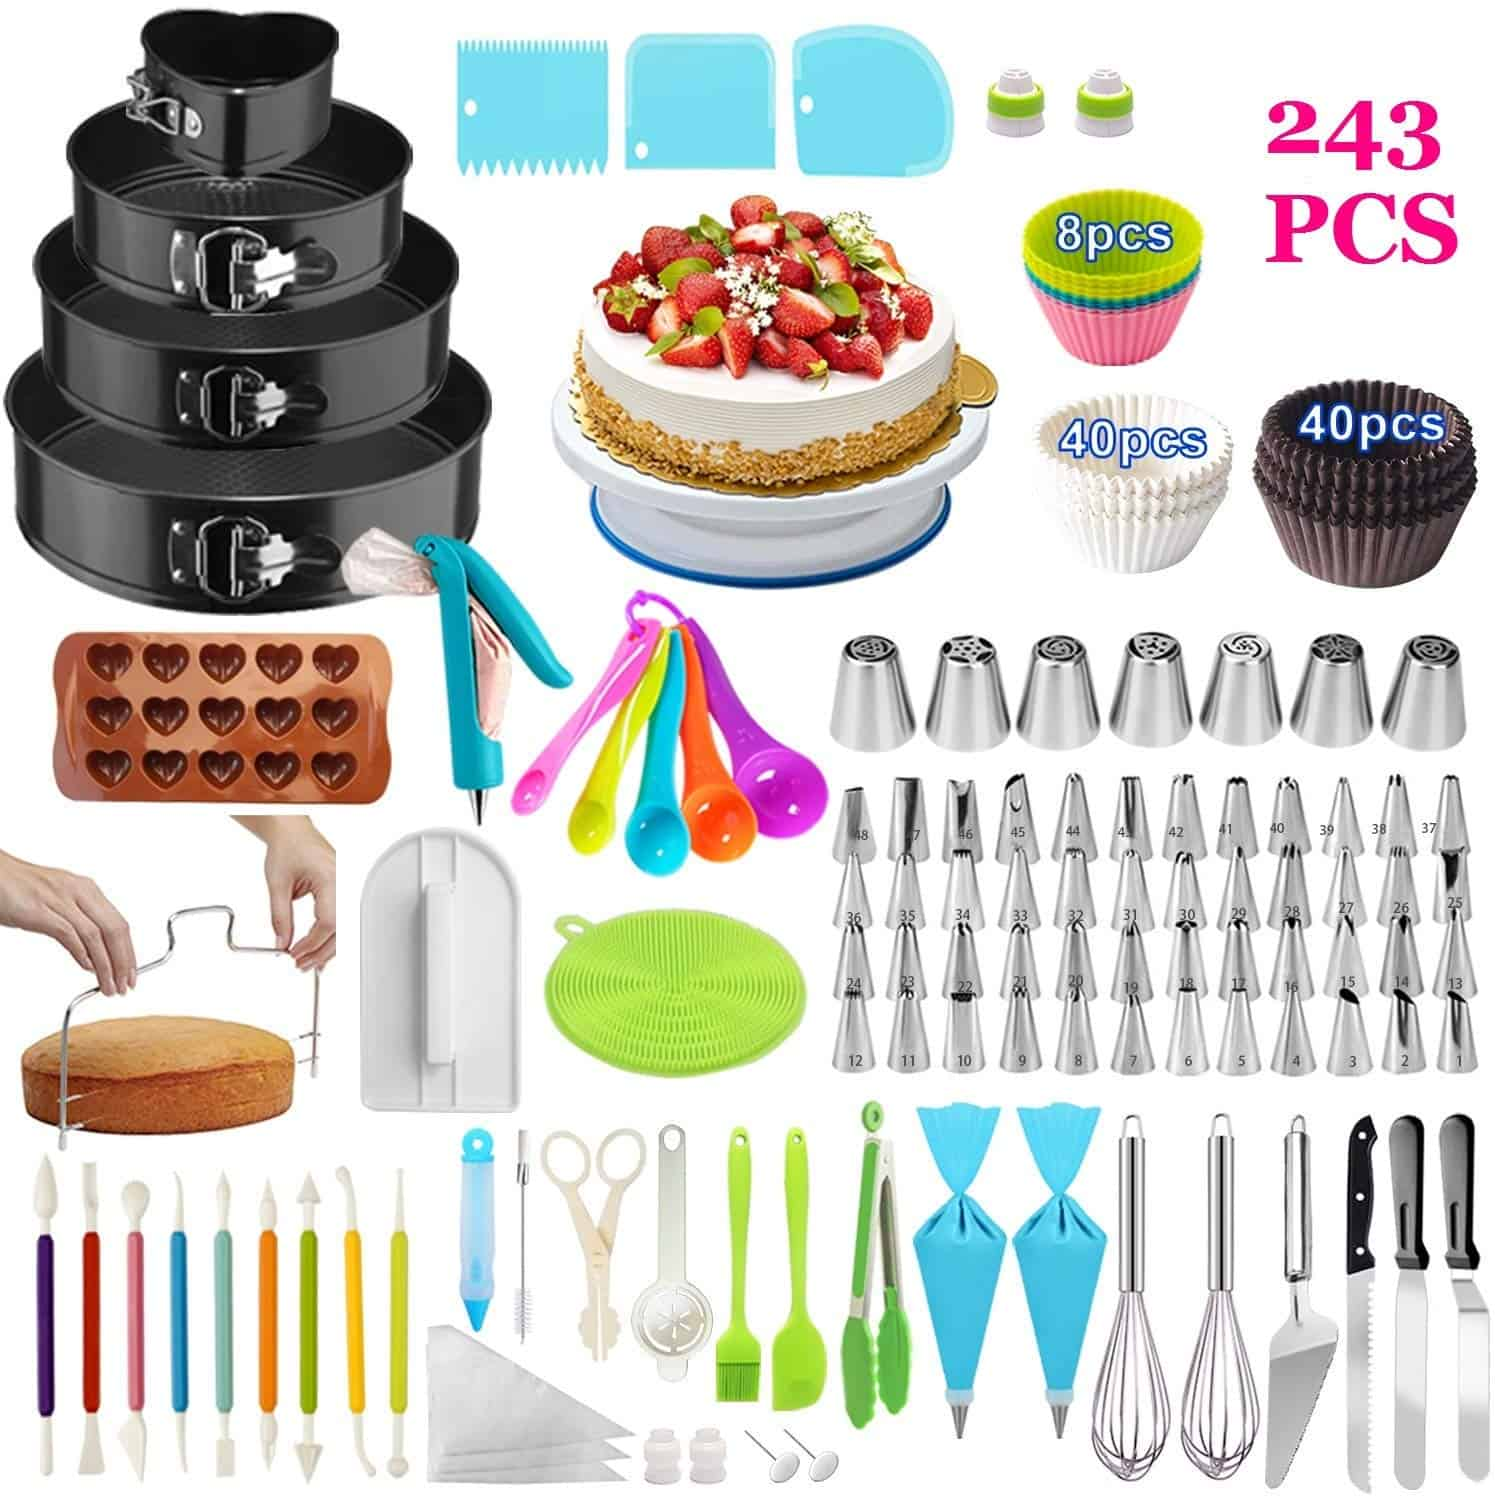 Taiker 243 piece cake decorating kit